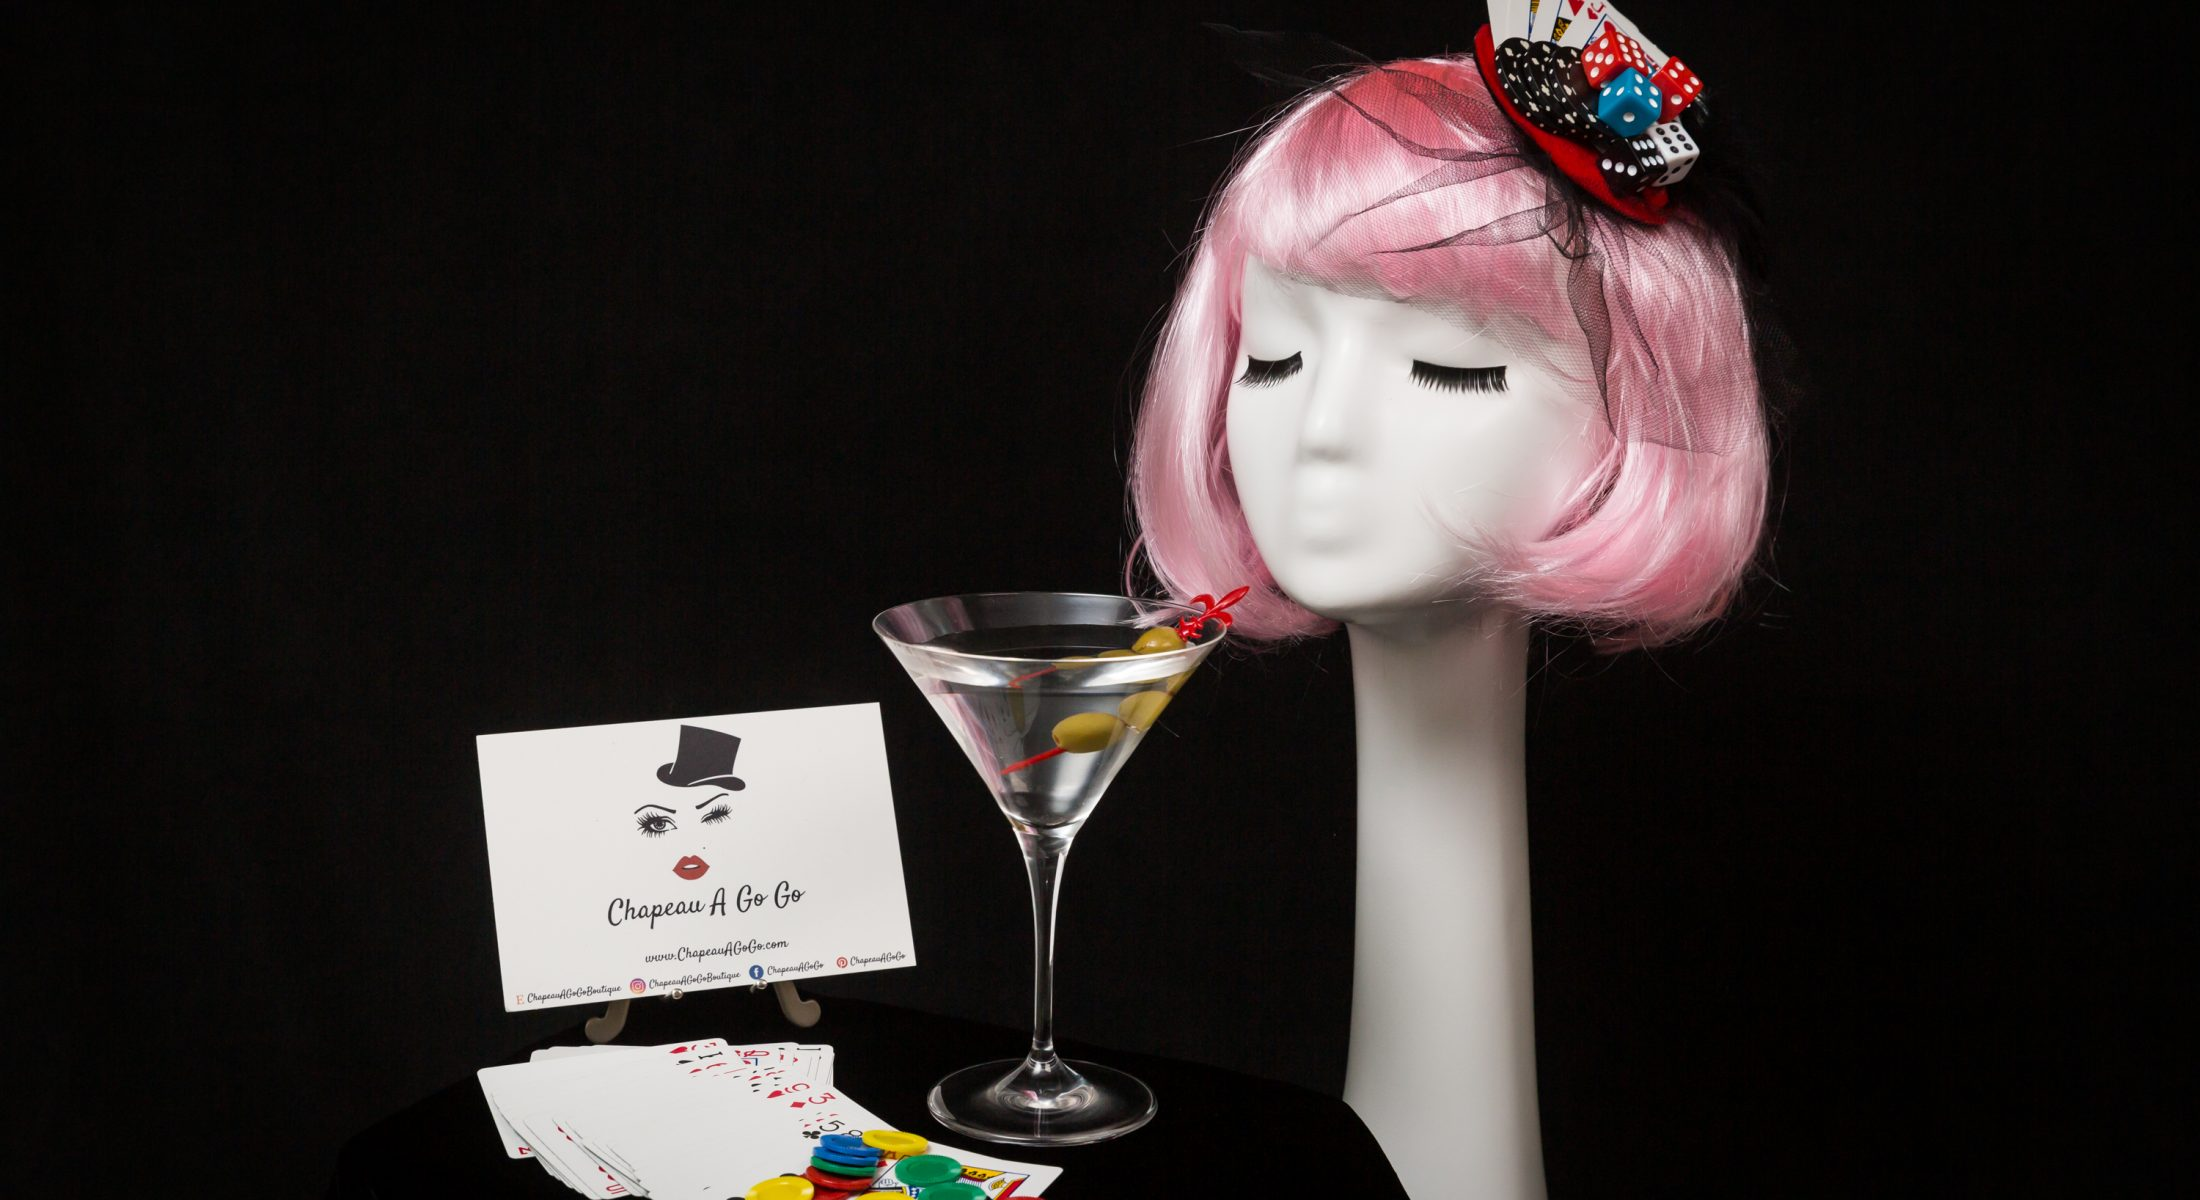 Las Vegas fascinator by Chapeau A Go Go on pink haired mannequin with martini glass